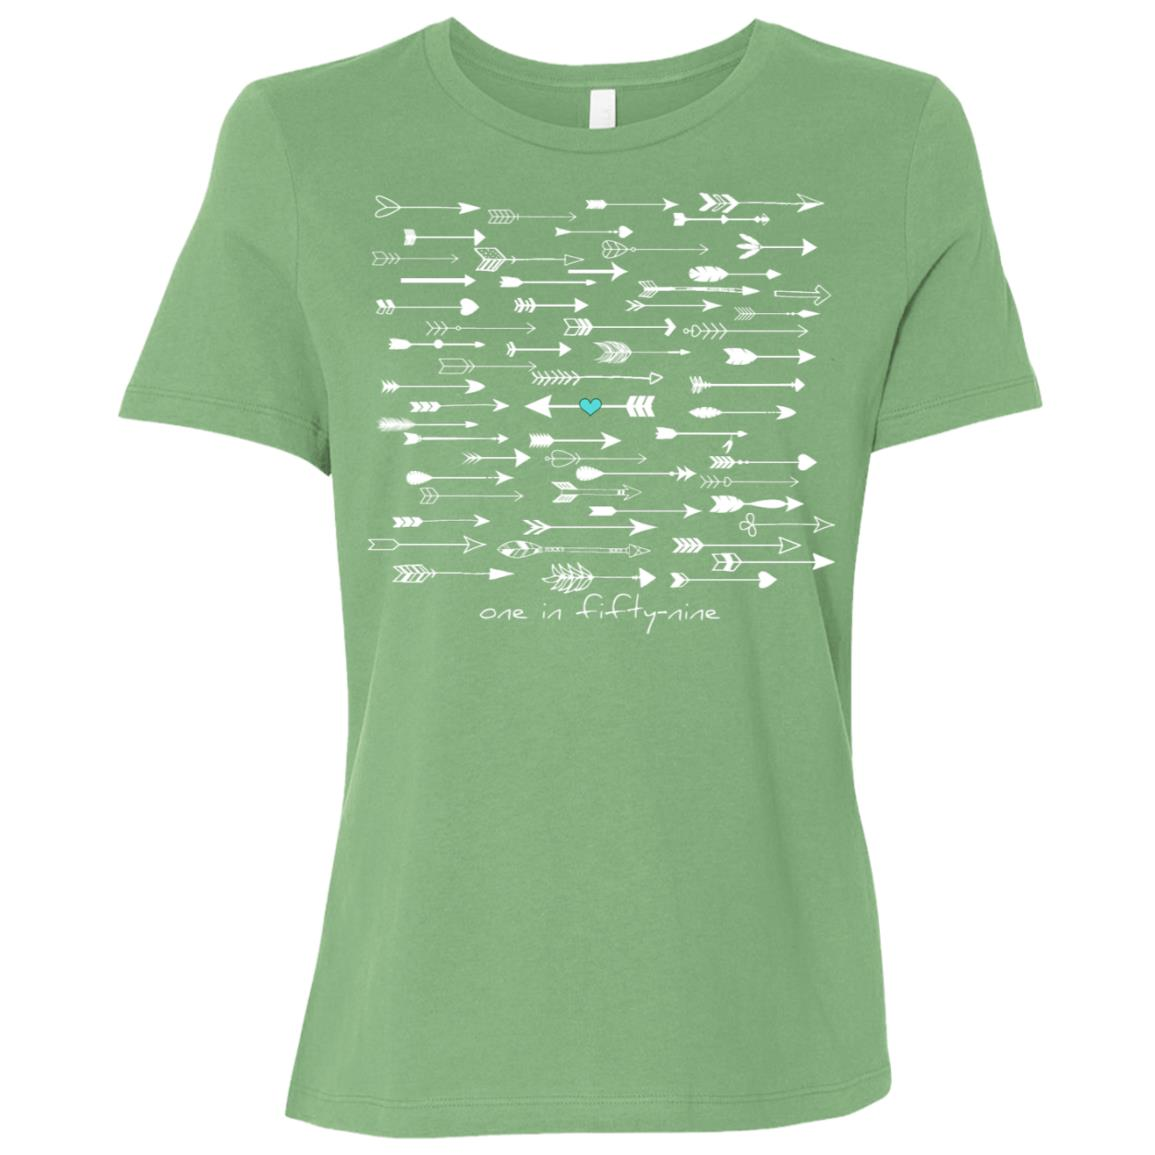 Cdc reported autism rate is 1 in 59. #nomorepuzzlepieces-7 Women Short Sleeve T-Shirt